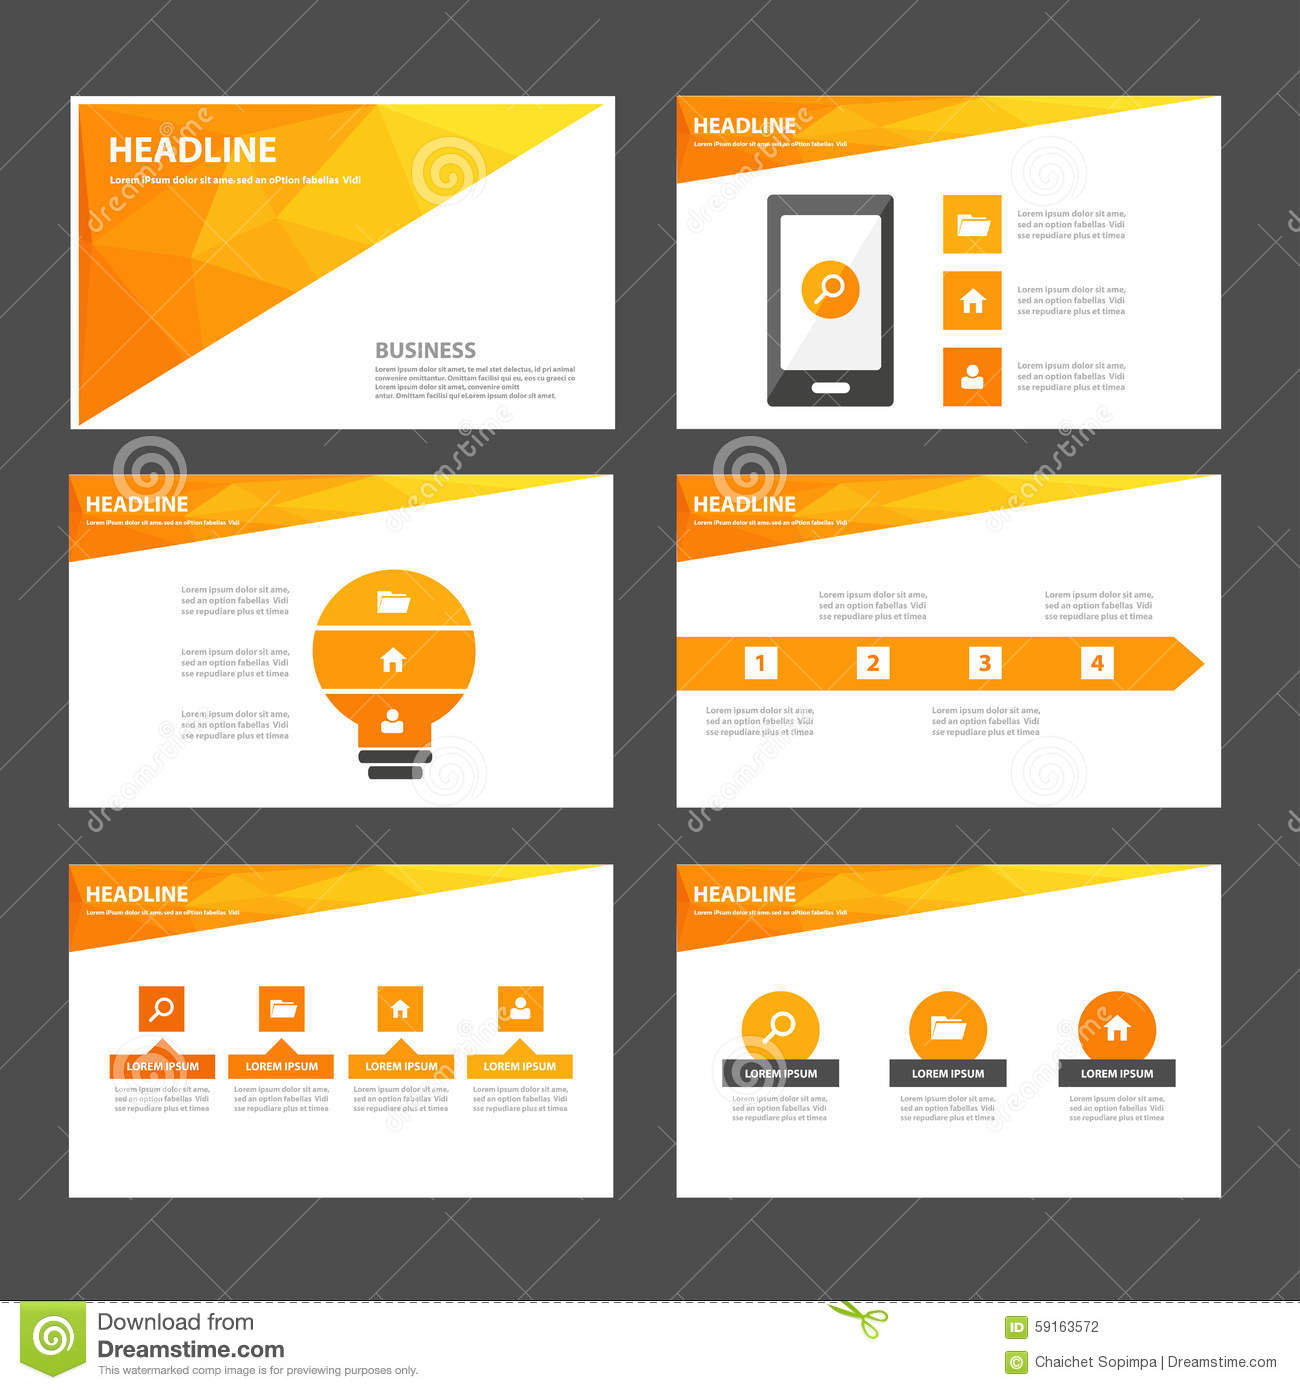 abstract orange yellow infographic element and icon presentation templates flat design set for. Black Bedroom Furniture Sets. Home Design Ideas